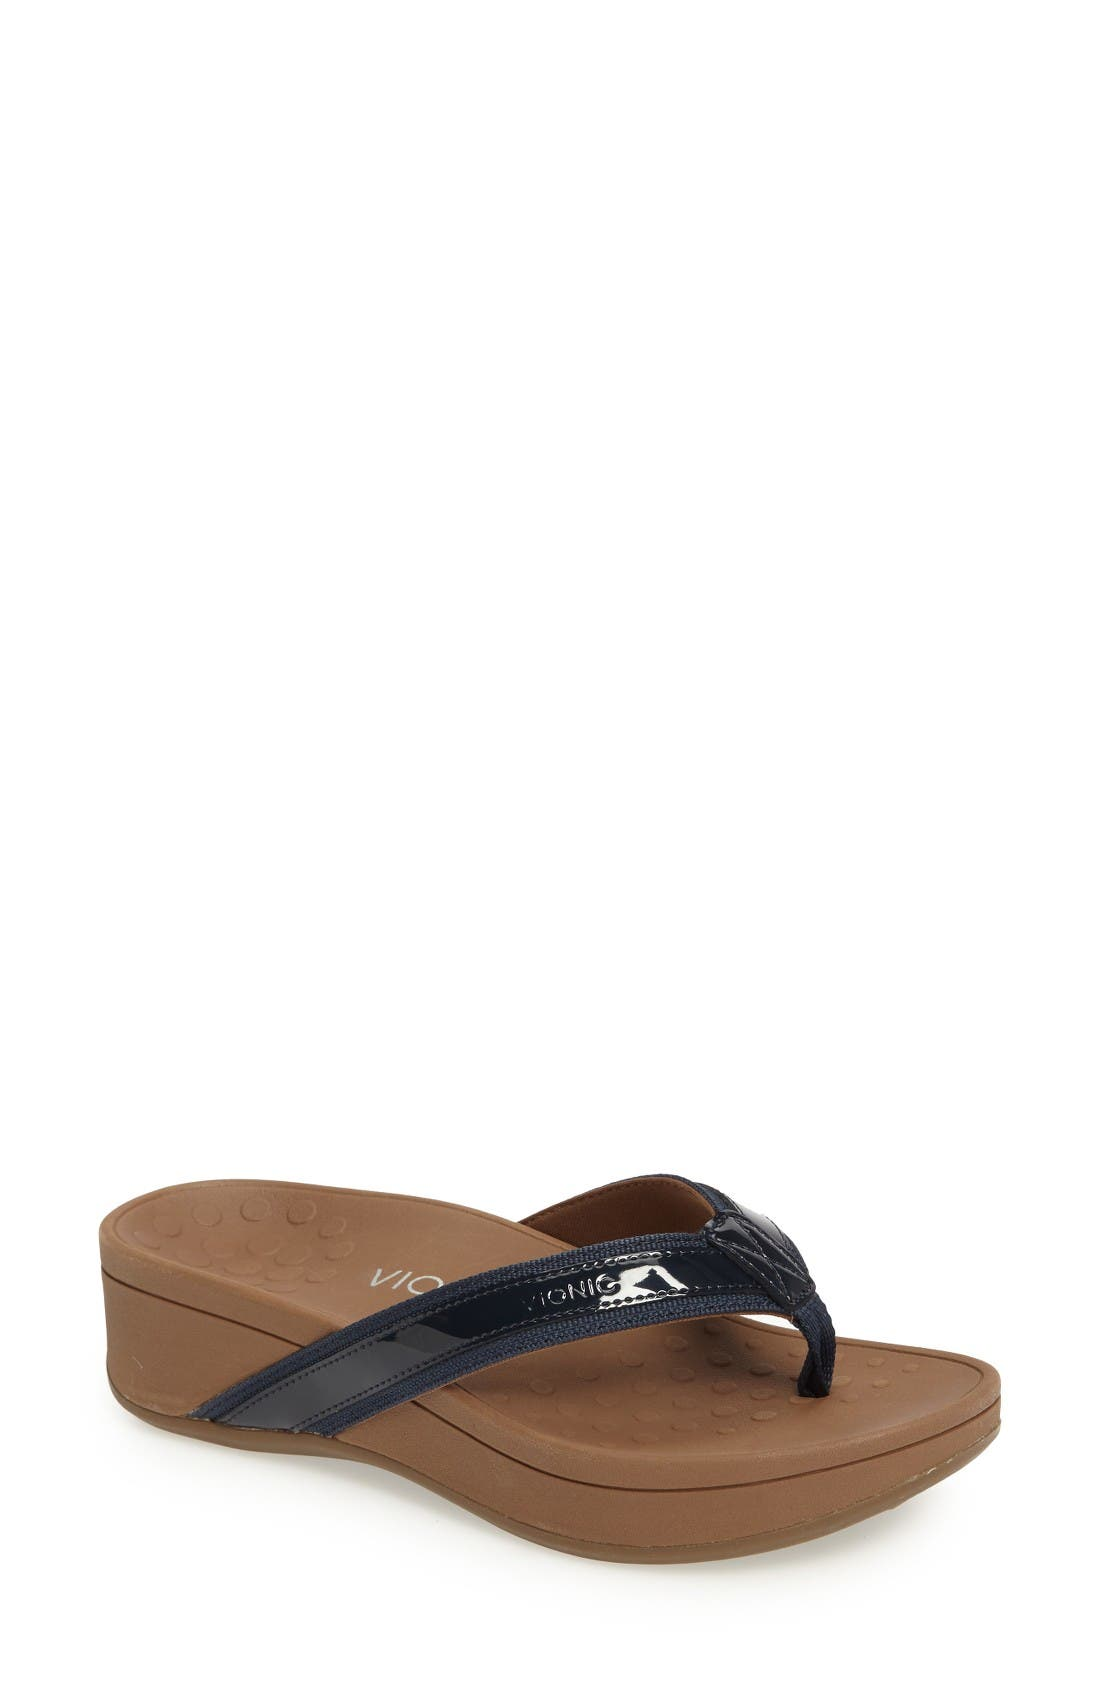 High Tide Wedge Flip Flop,                         Main,                         color, Navy Leather